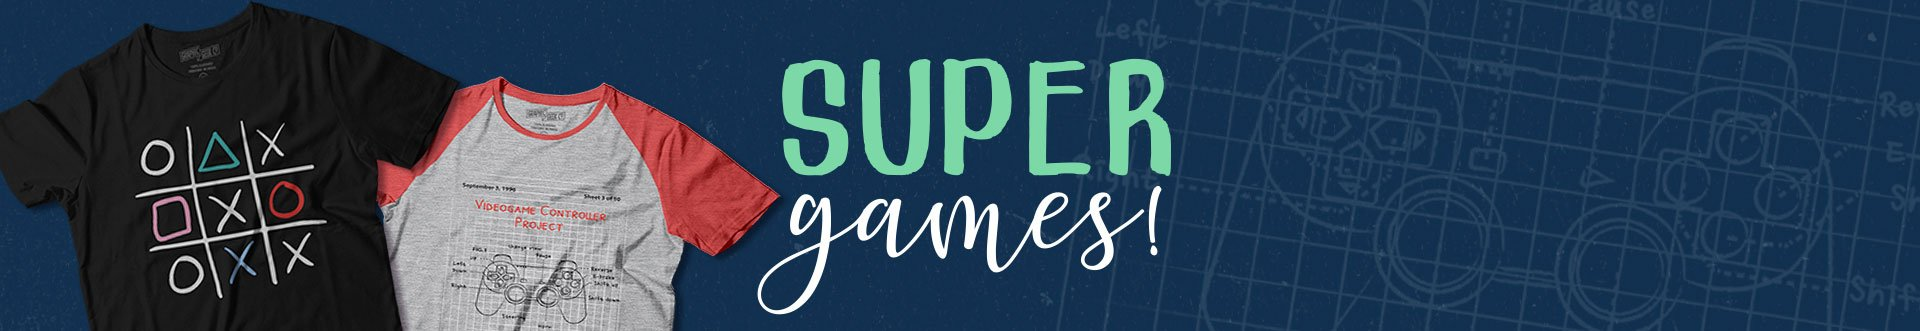 Banner Página Super games - Geek